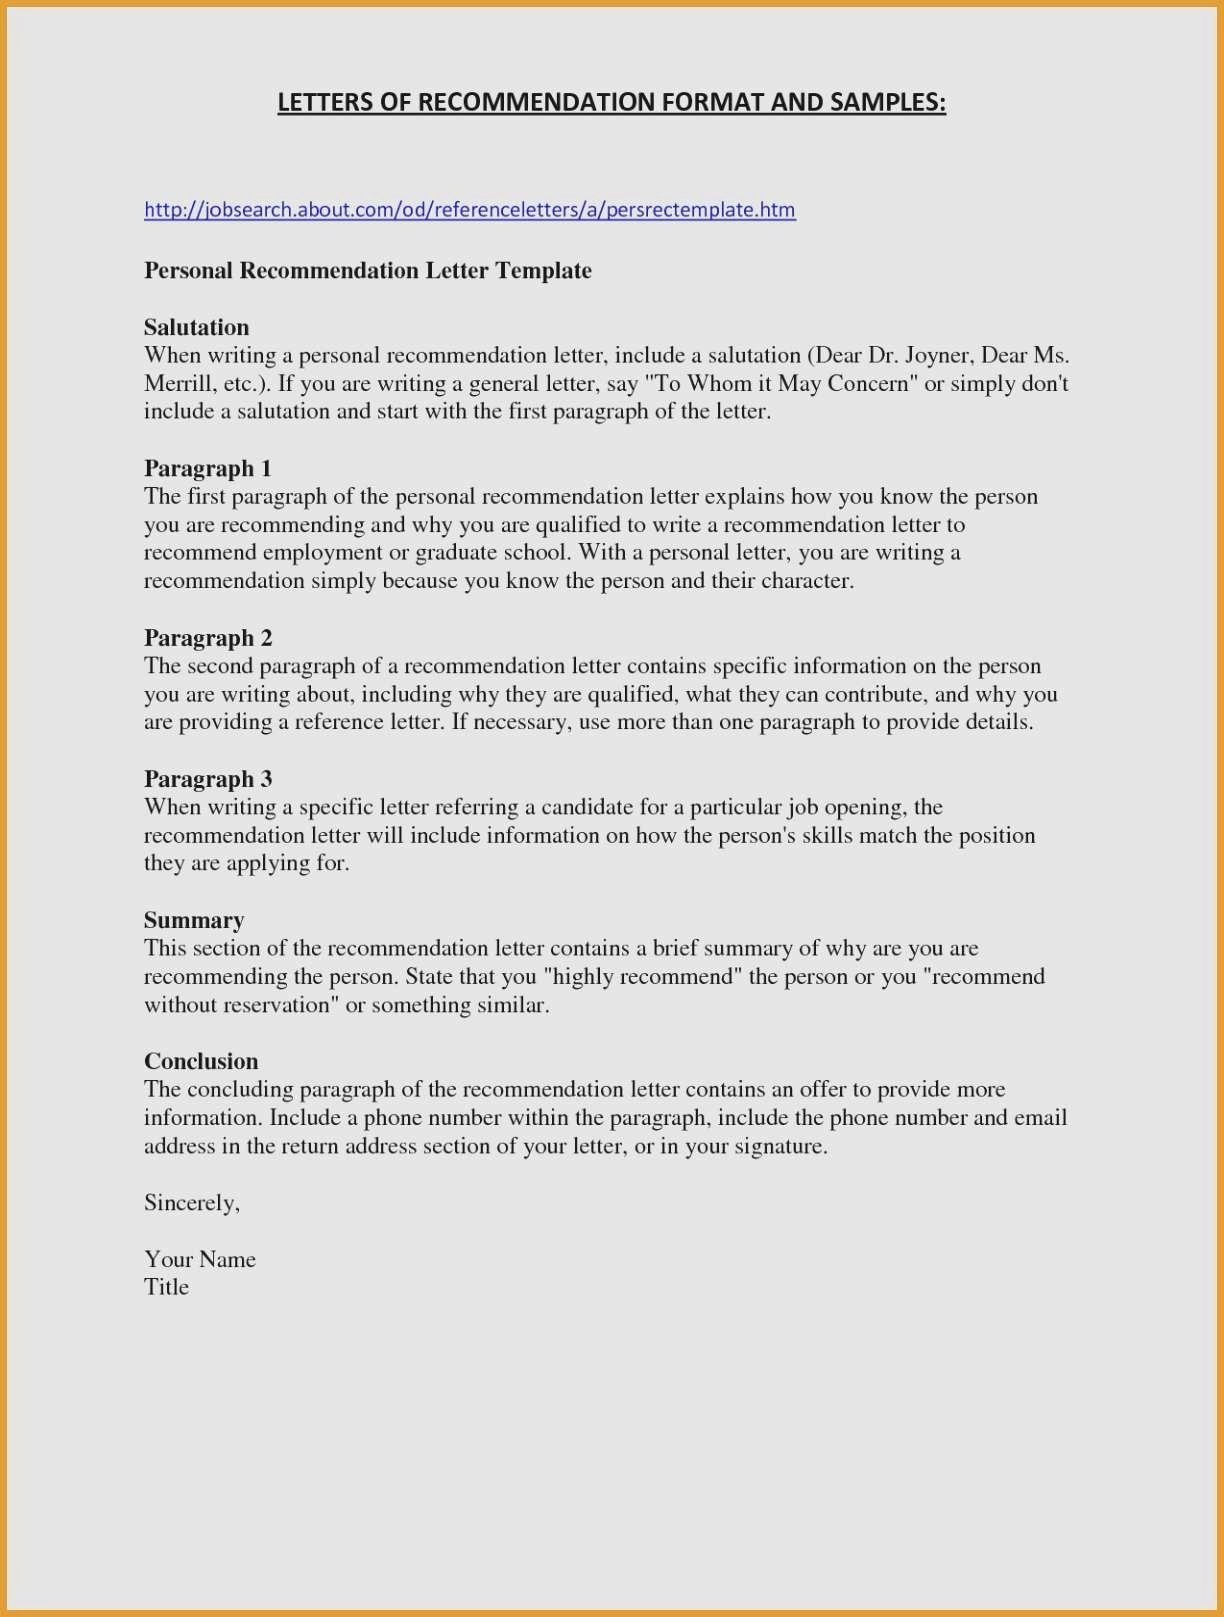 Maternity Leave Resignation Letter Best Of Valid Letter to Employer Not Returning after Maternity